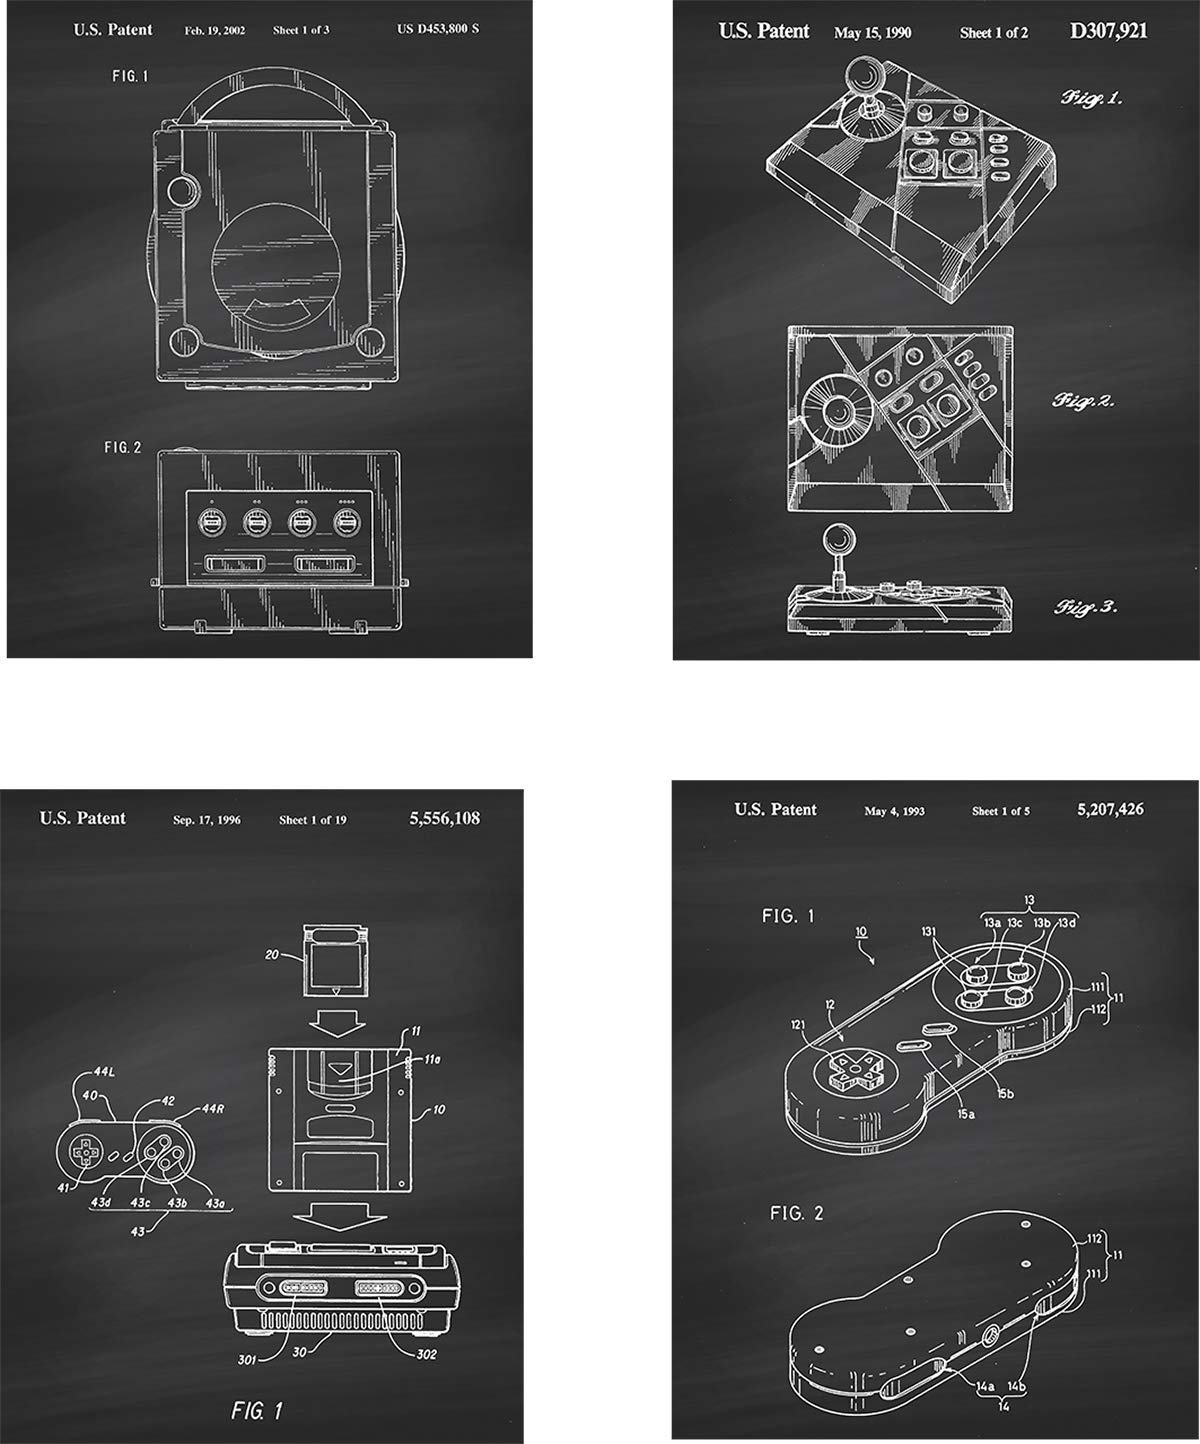 Nintendo Gaming Patent Wall Art Prints - set of Four (8x10) Unframed - wall art decor for any video game lovers